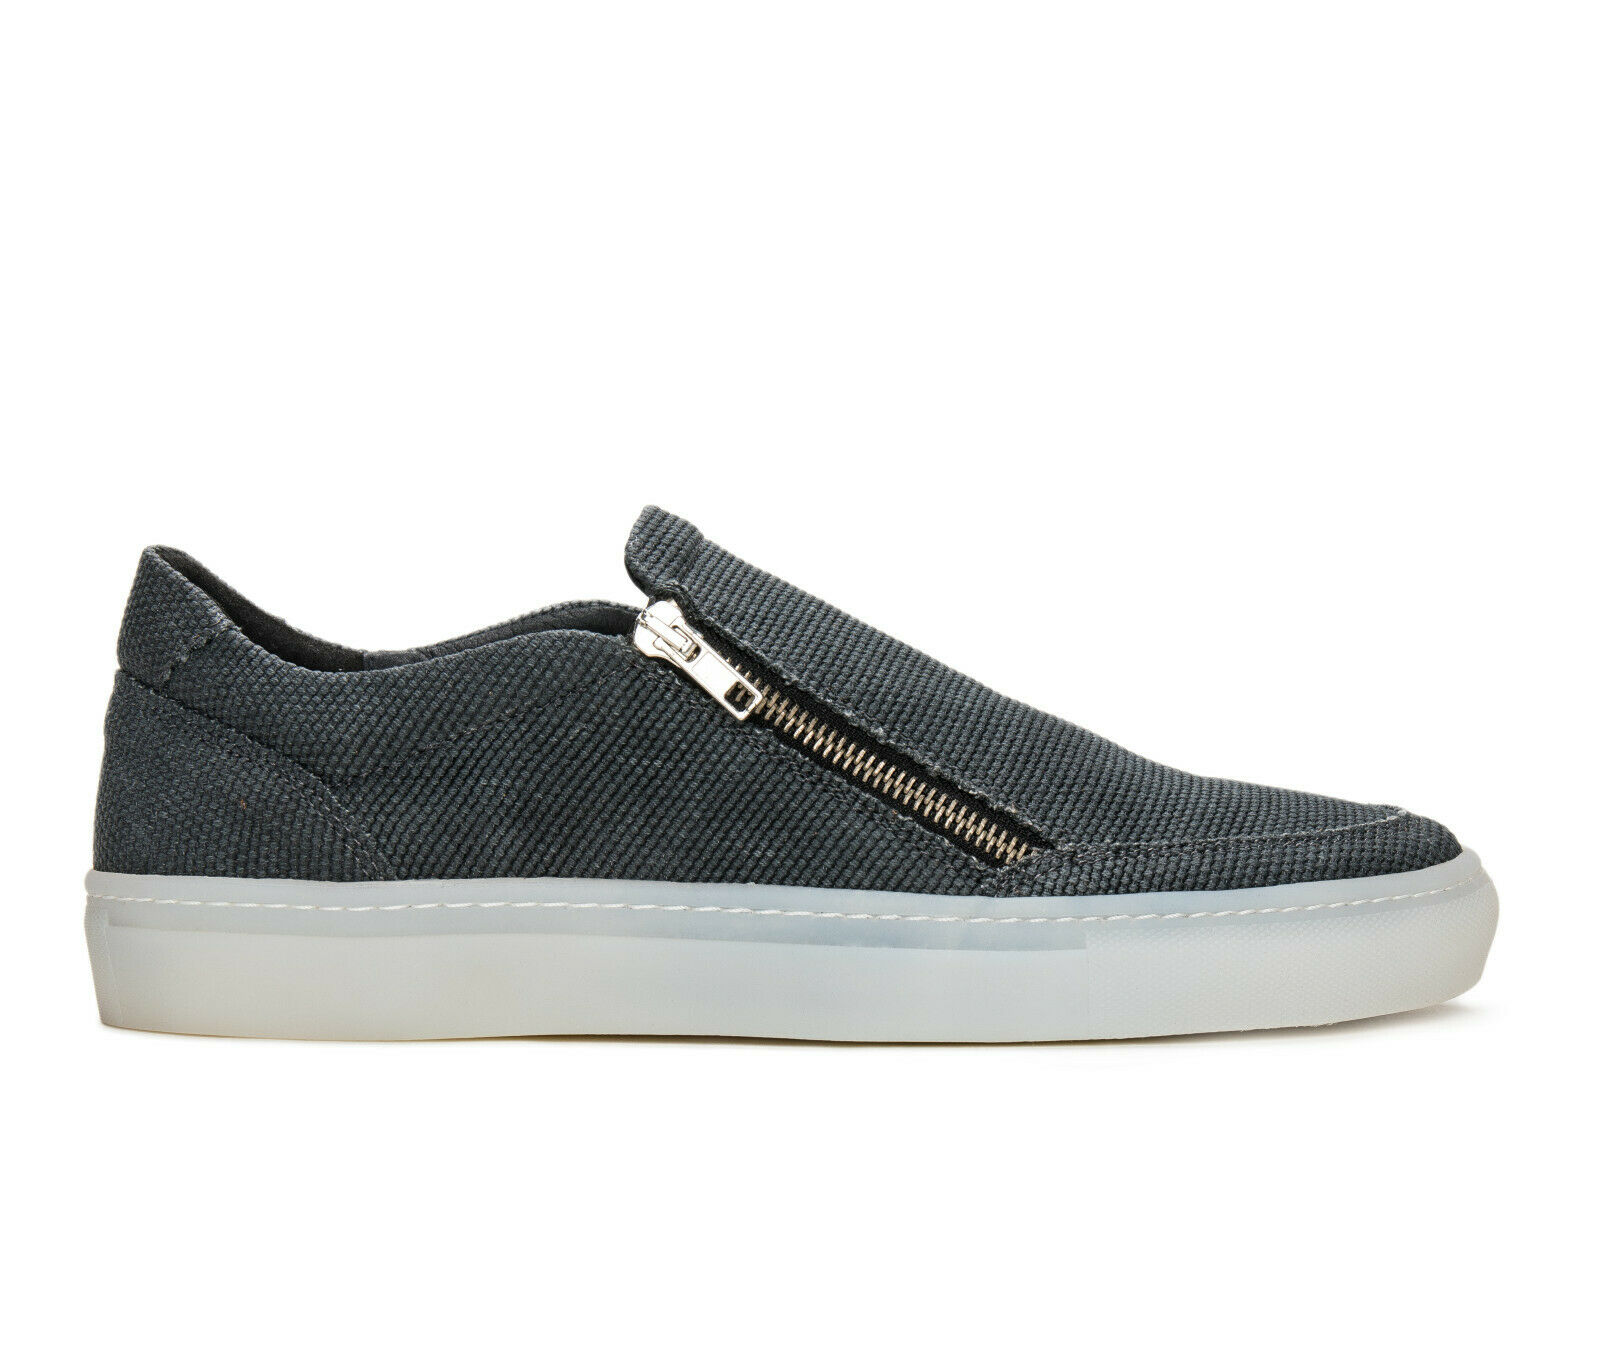 Casual comfort sport shoe sneaker on organic cotton breathable lined with zipper